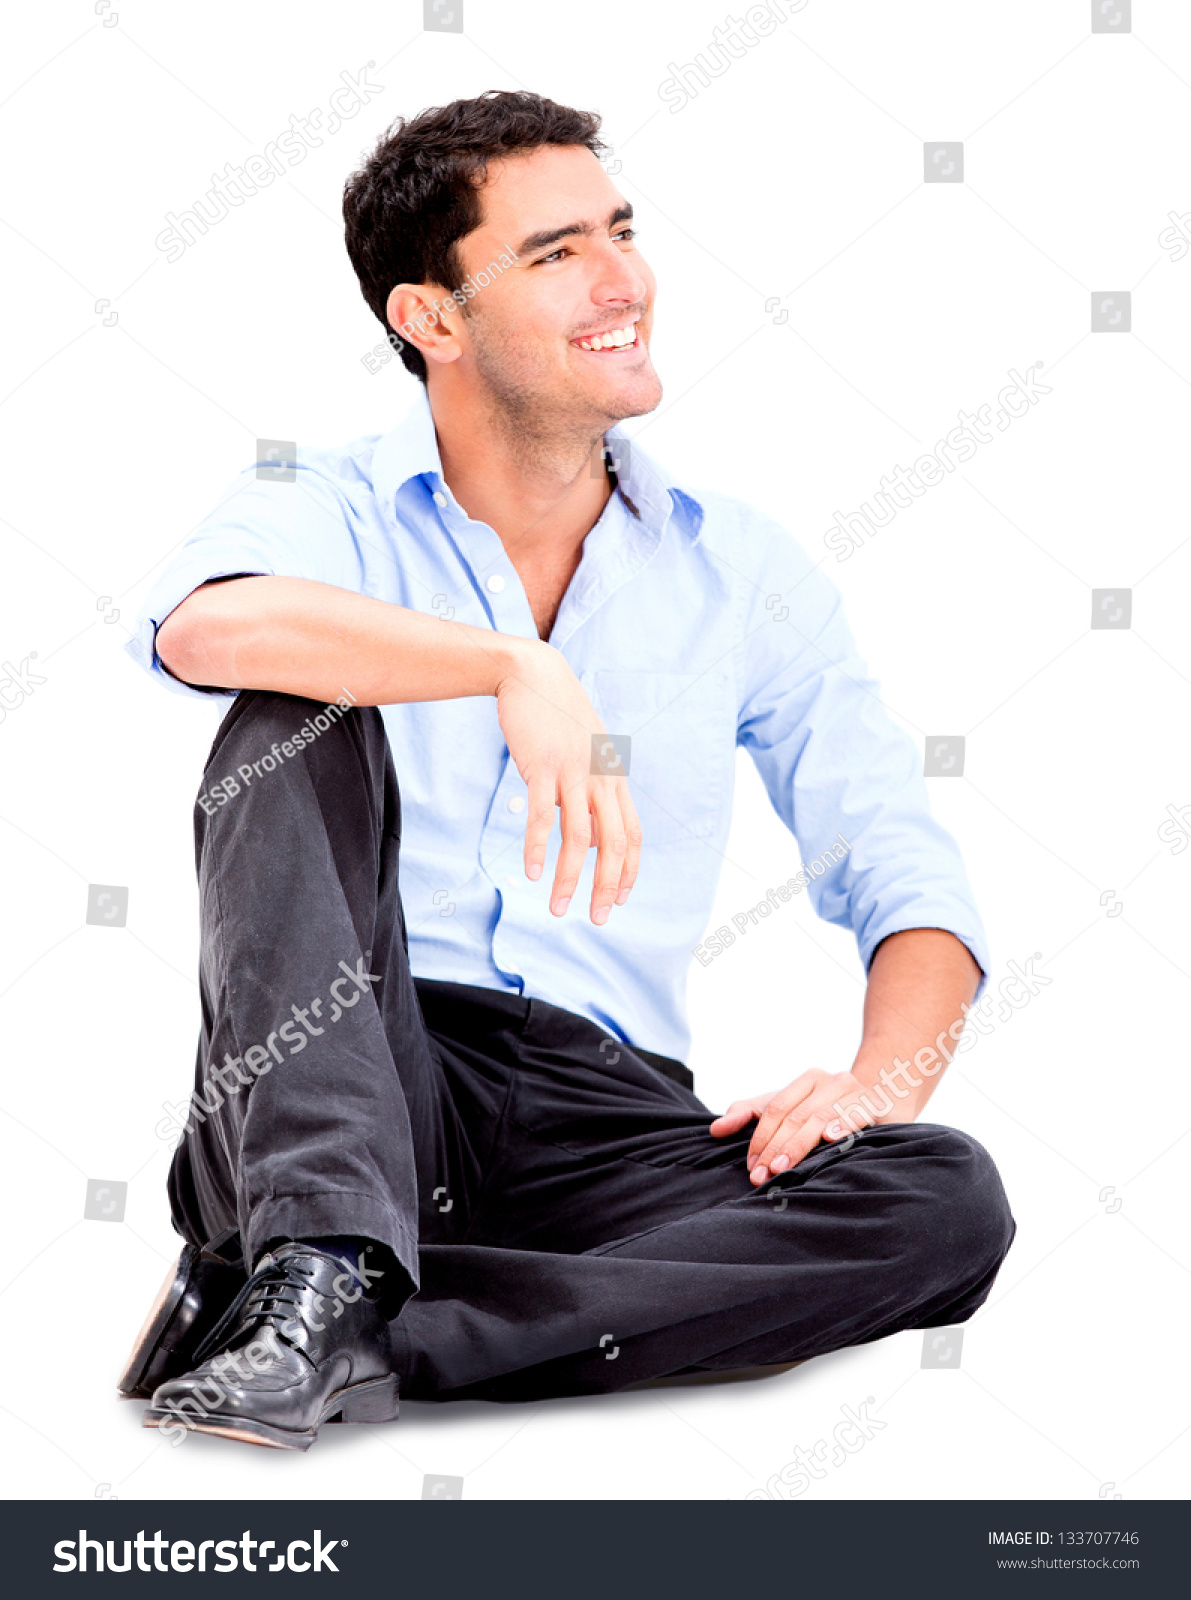 relaxed business man sitting on floor lagerfoto 133707746 shutterstock. Black Bedroom Furniture Sets. Home Design Ideas